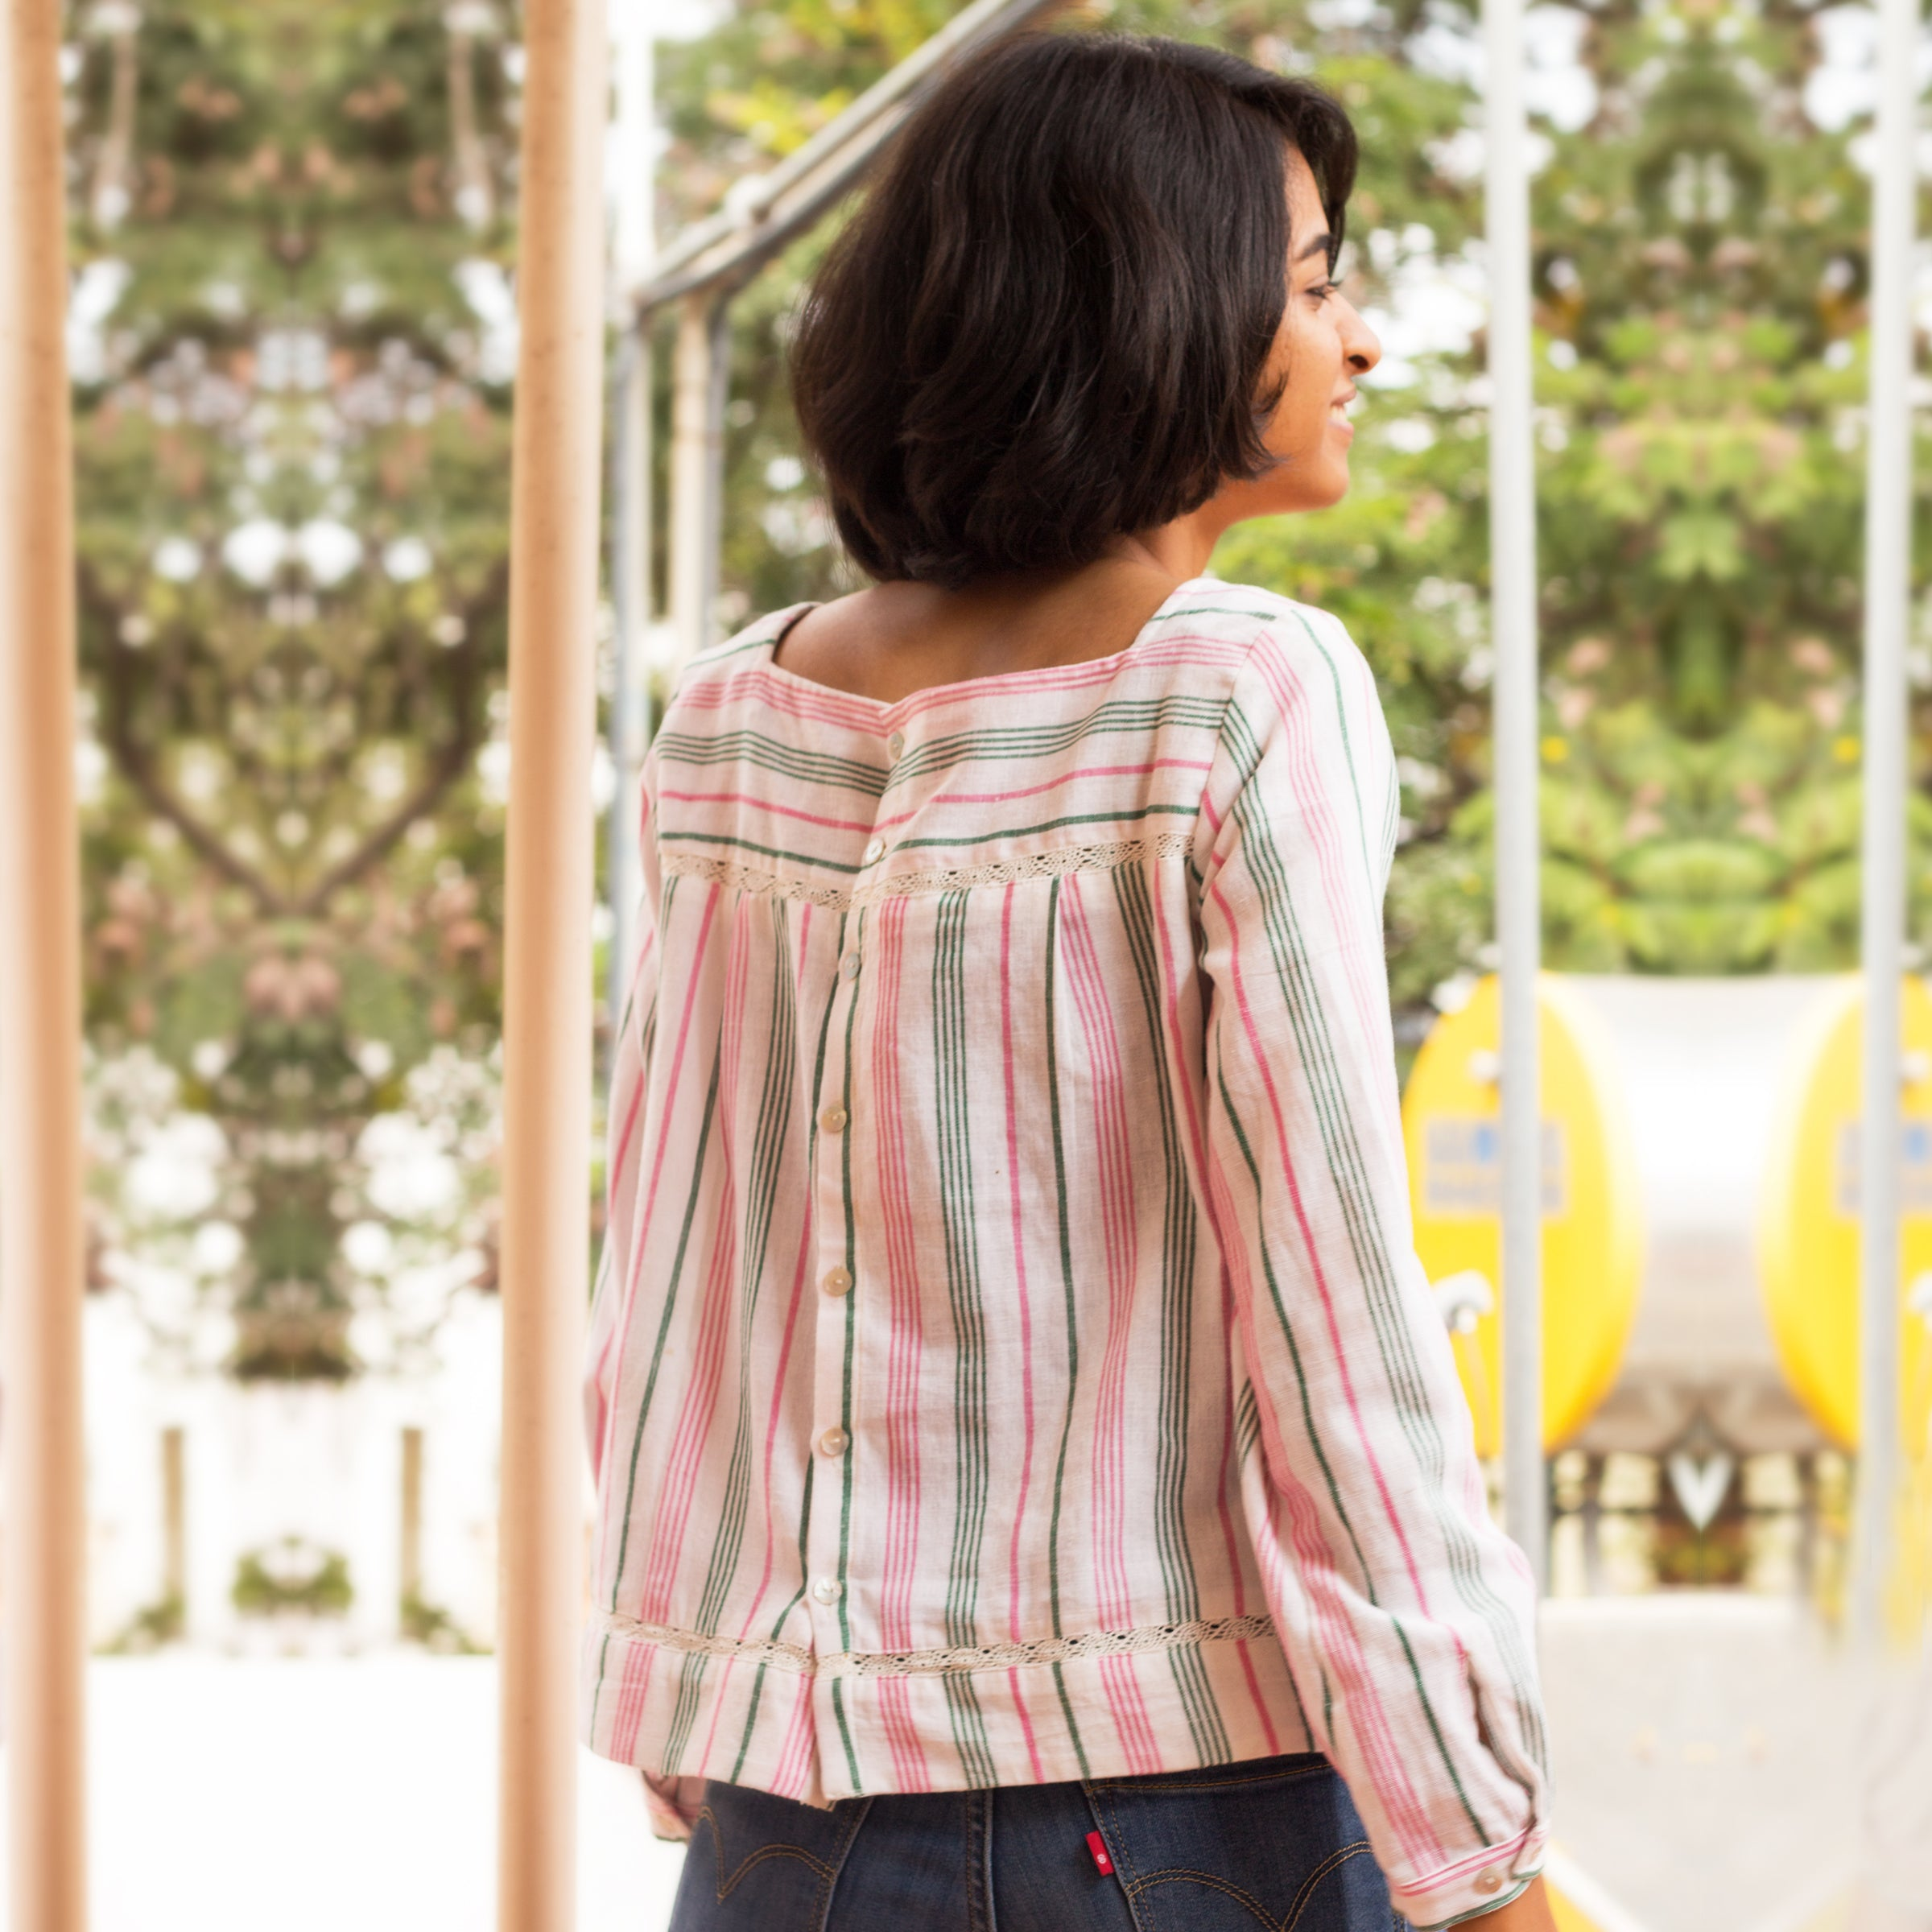 Pomogrenade_Peekaboo Top Multicolour stripes_Back